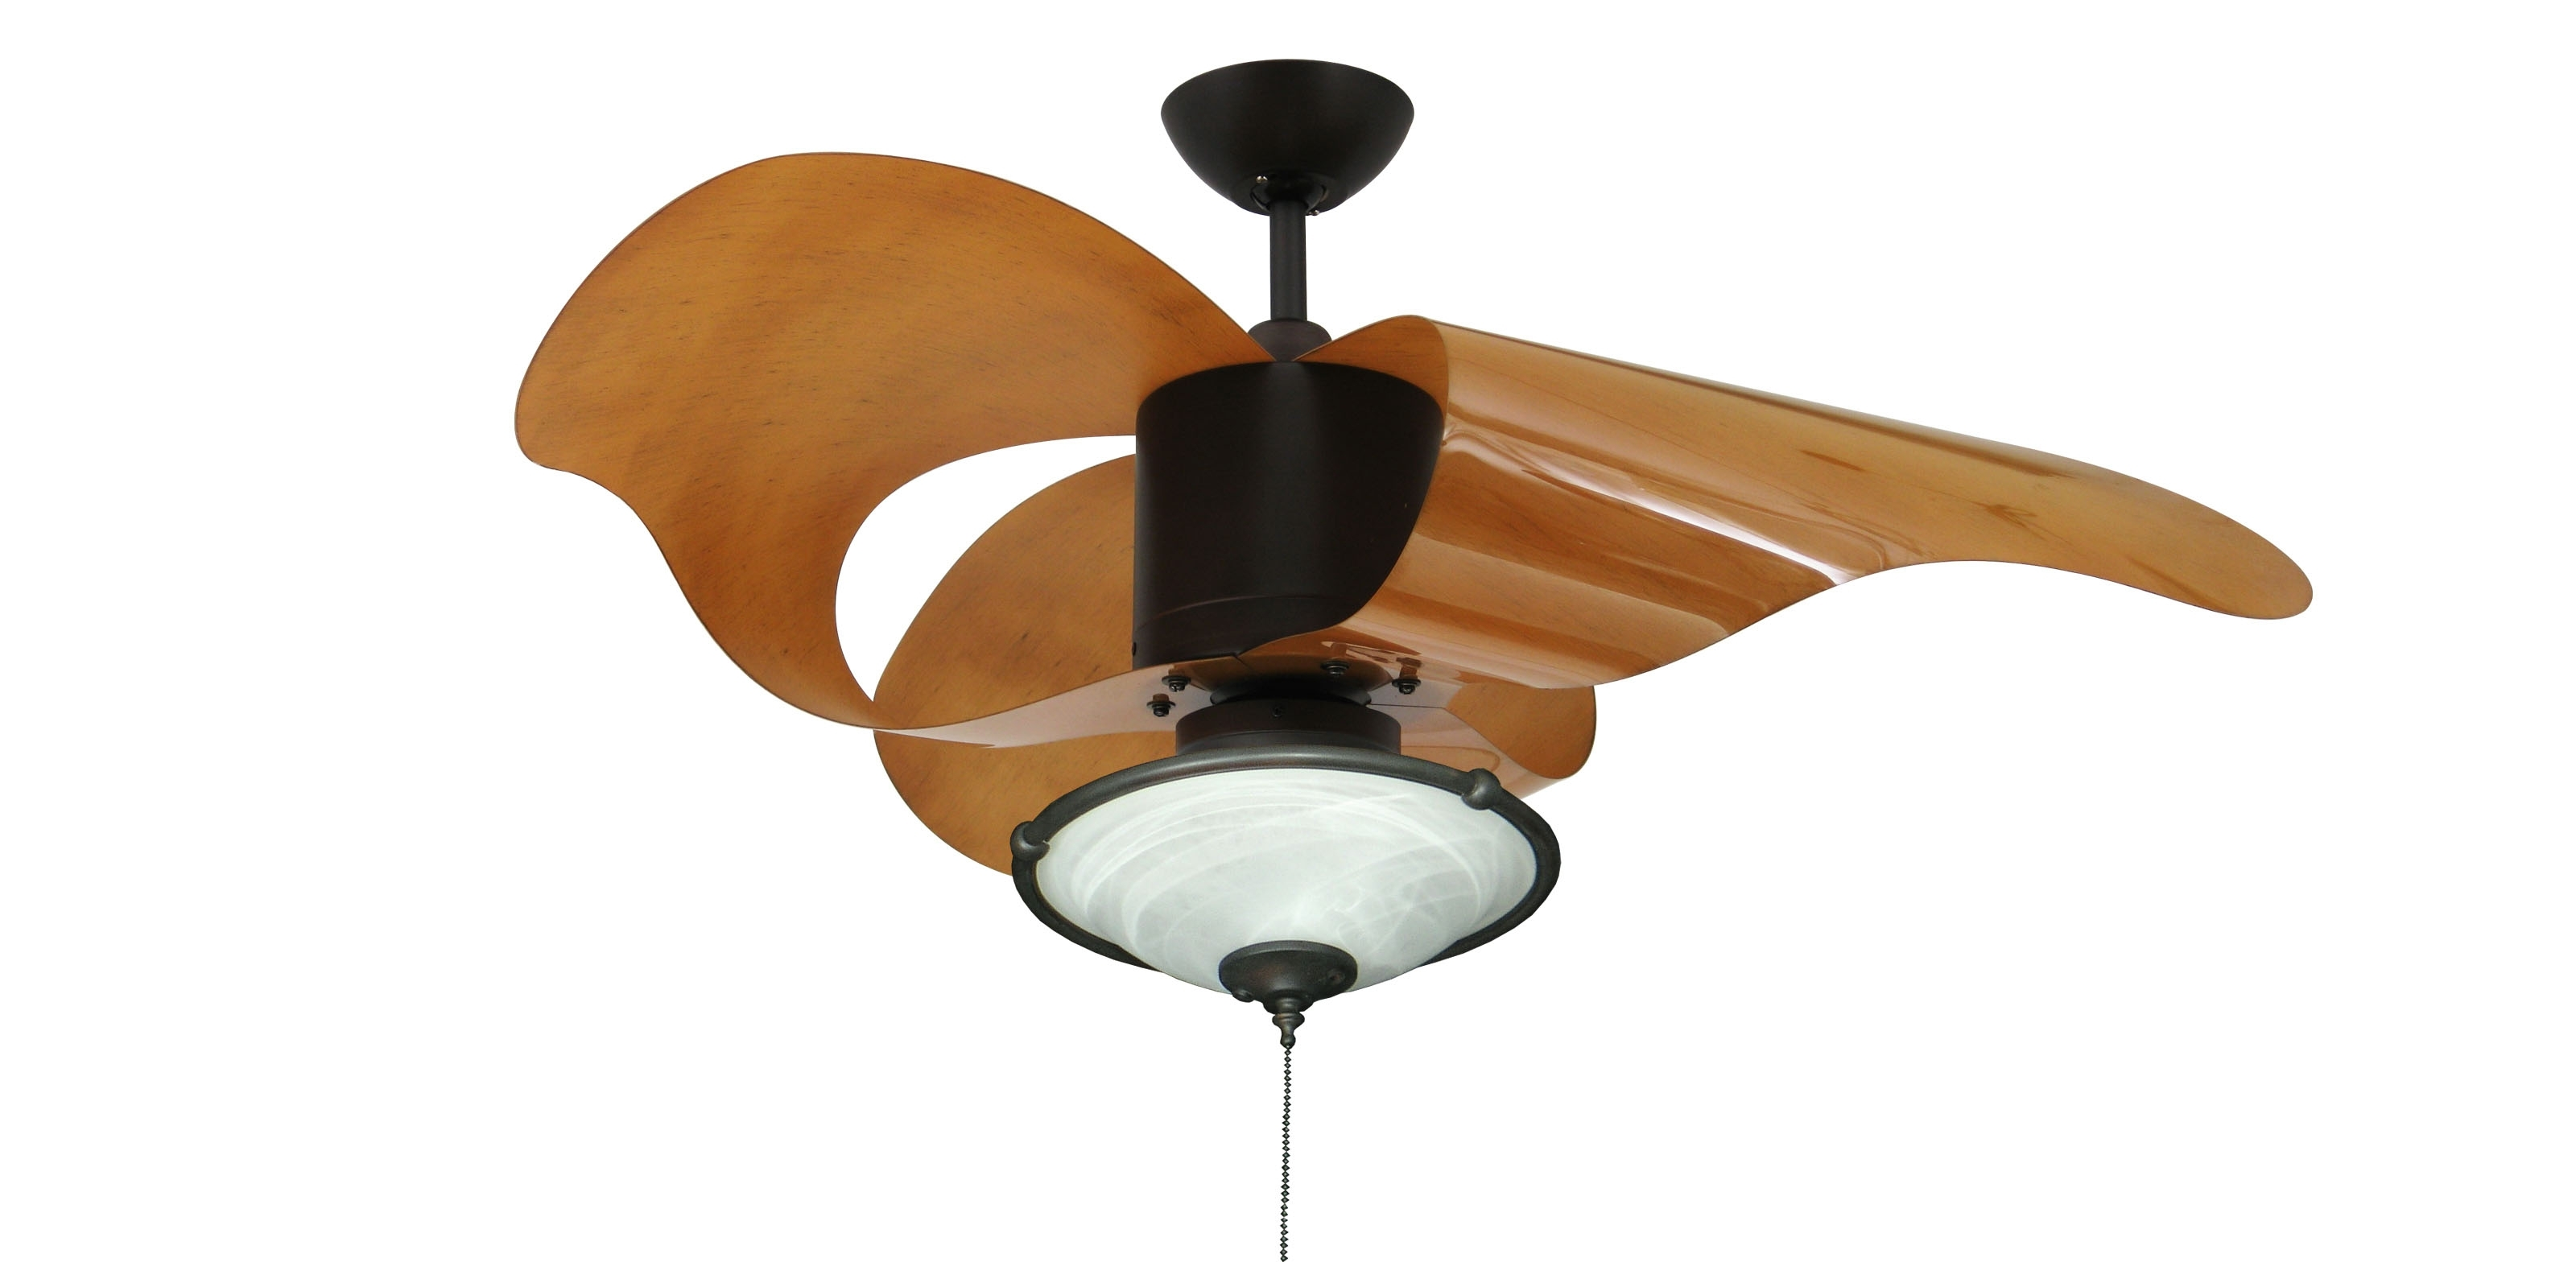 Outdoor Ceiling Fan With Light And Remote – Tariqalhanaee Inside Trendy Outdoor Ceiling Fans With Light And Remote (View 10 of 20)